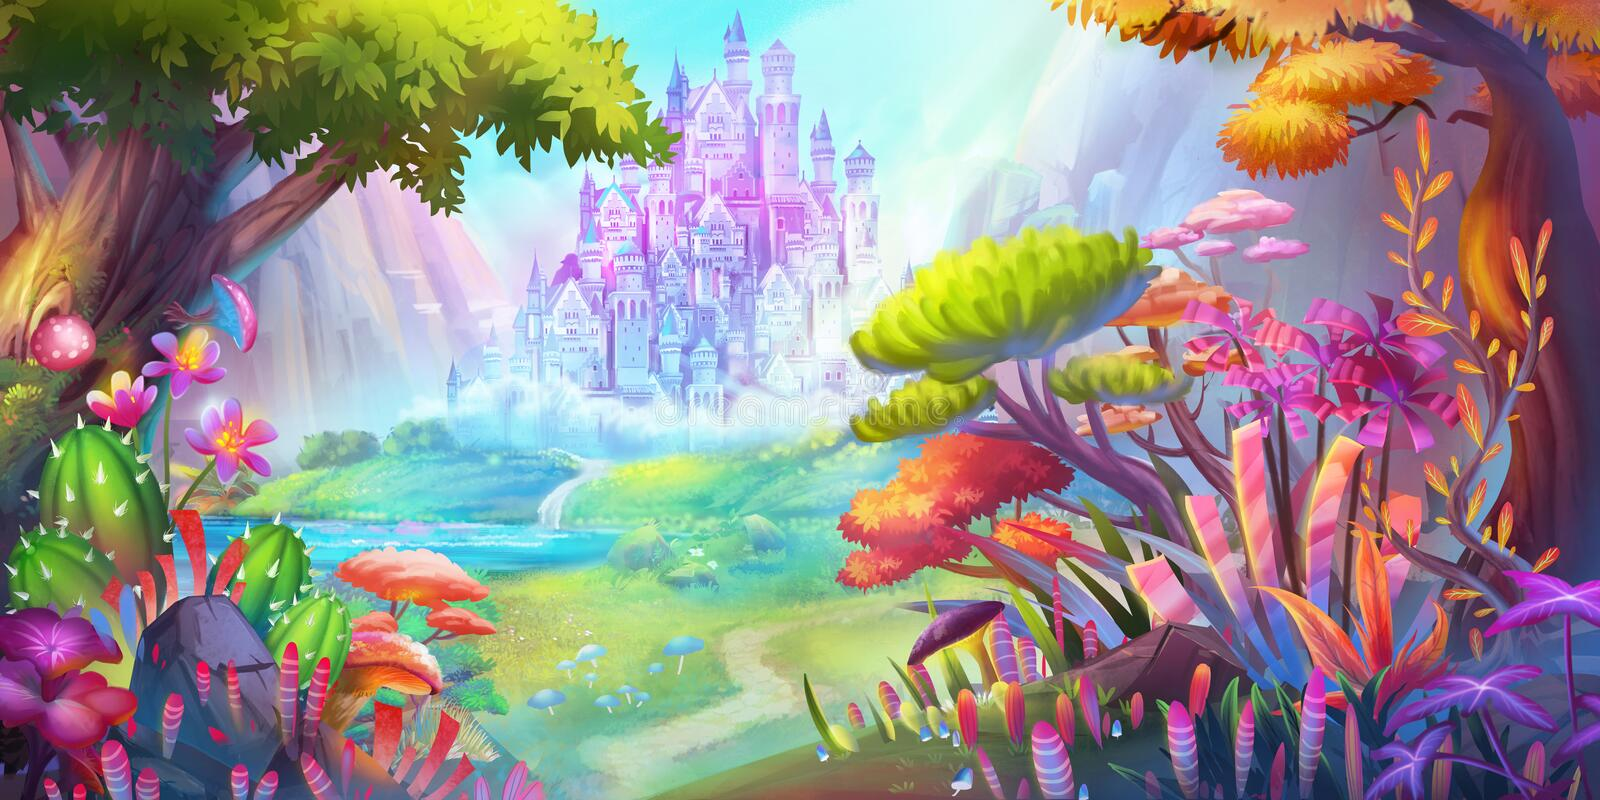 The Forest and Castle. Mountain and River. Fiction Backdrop. Concept Art. Realistic Illustration. Video Game Digital CG Artwork. Nature Scenery vector illustration